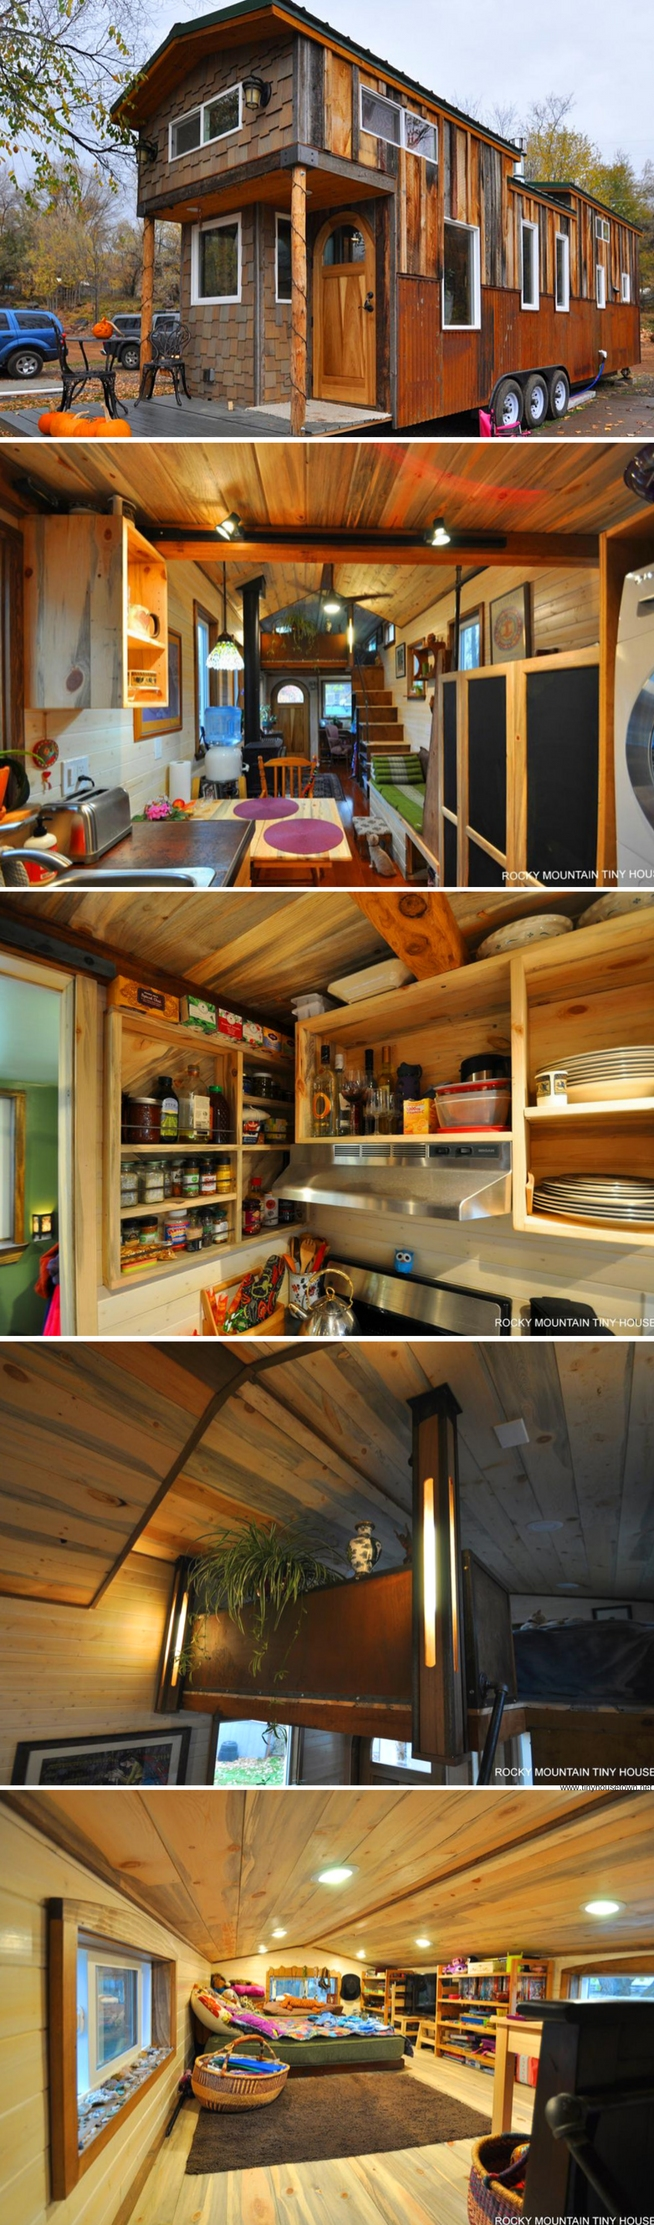 60 Small Mountain Cabin Plans with Loft Inspirational the Red Mountain Tiny House From Rocky Mountain Tiny Homes